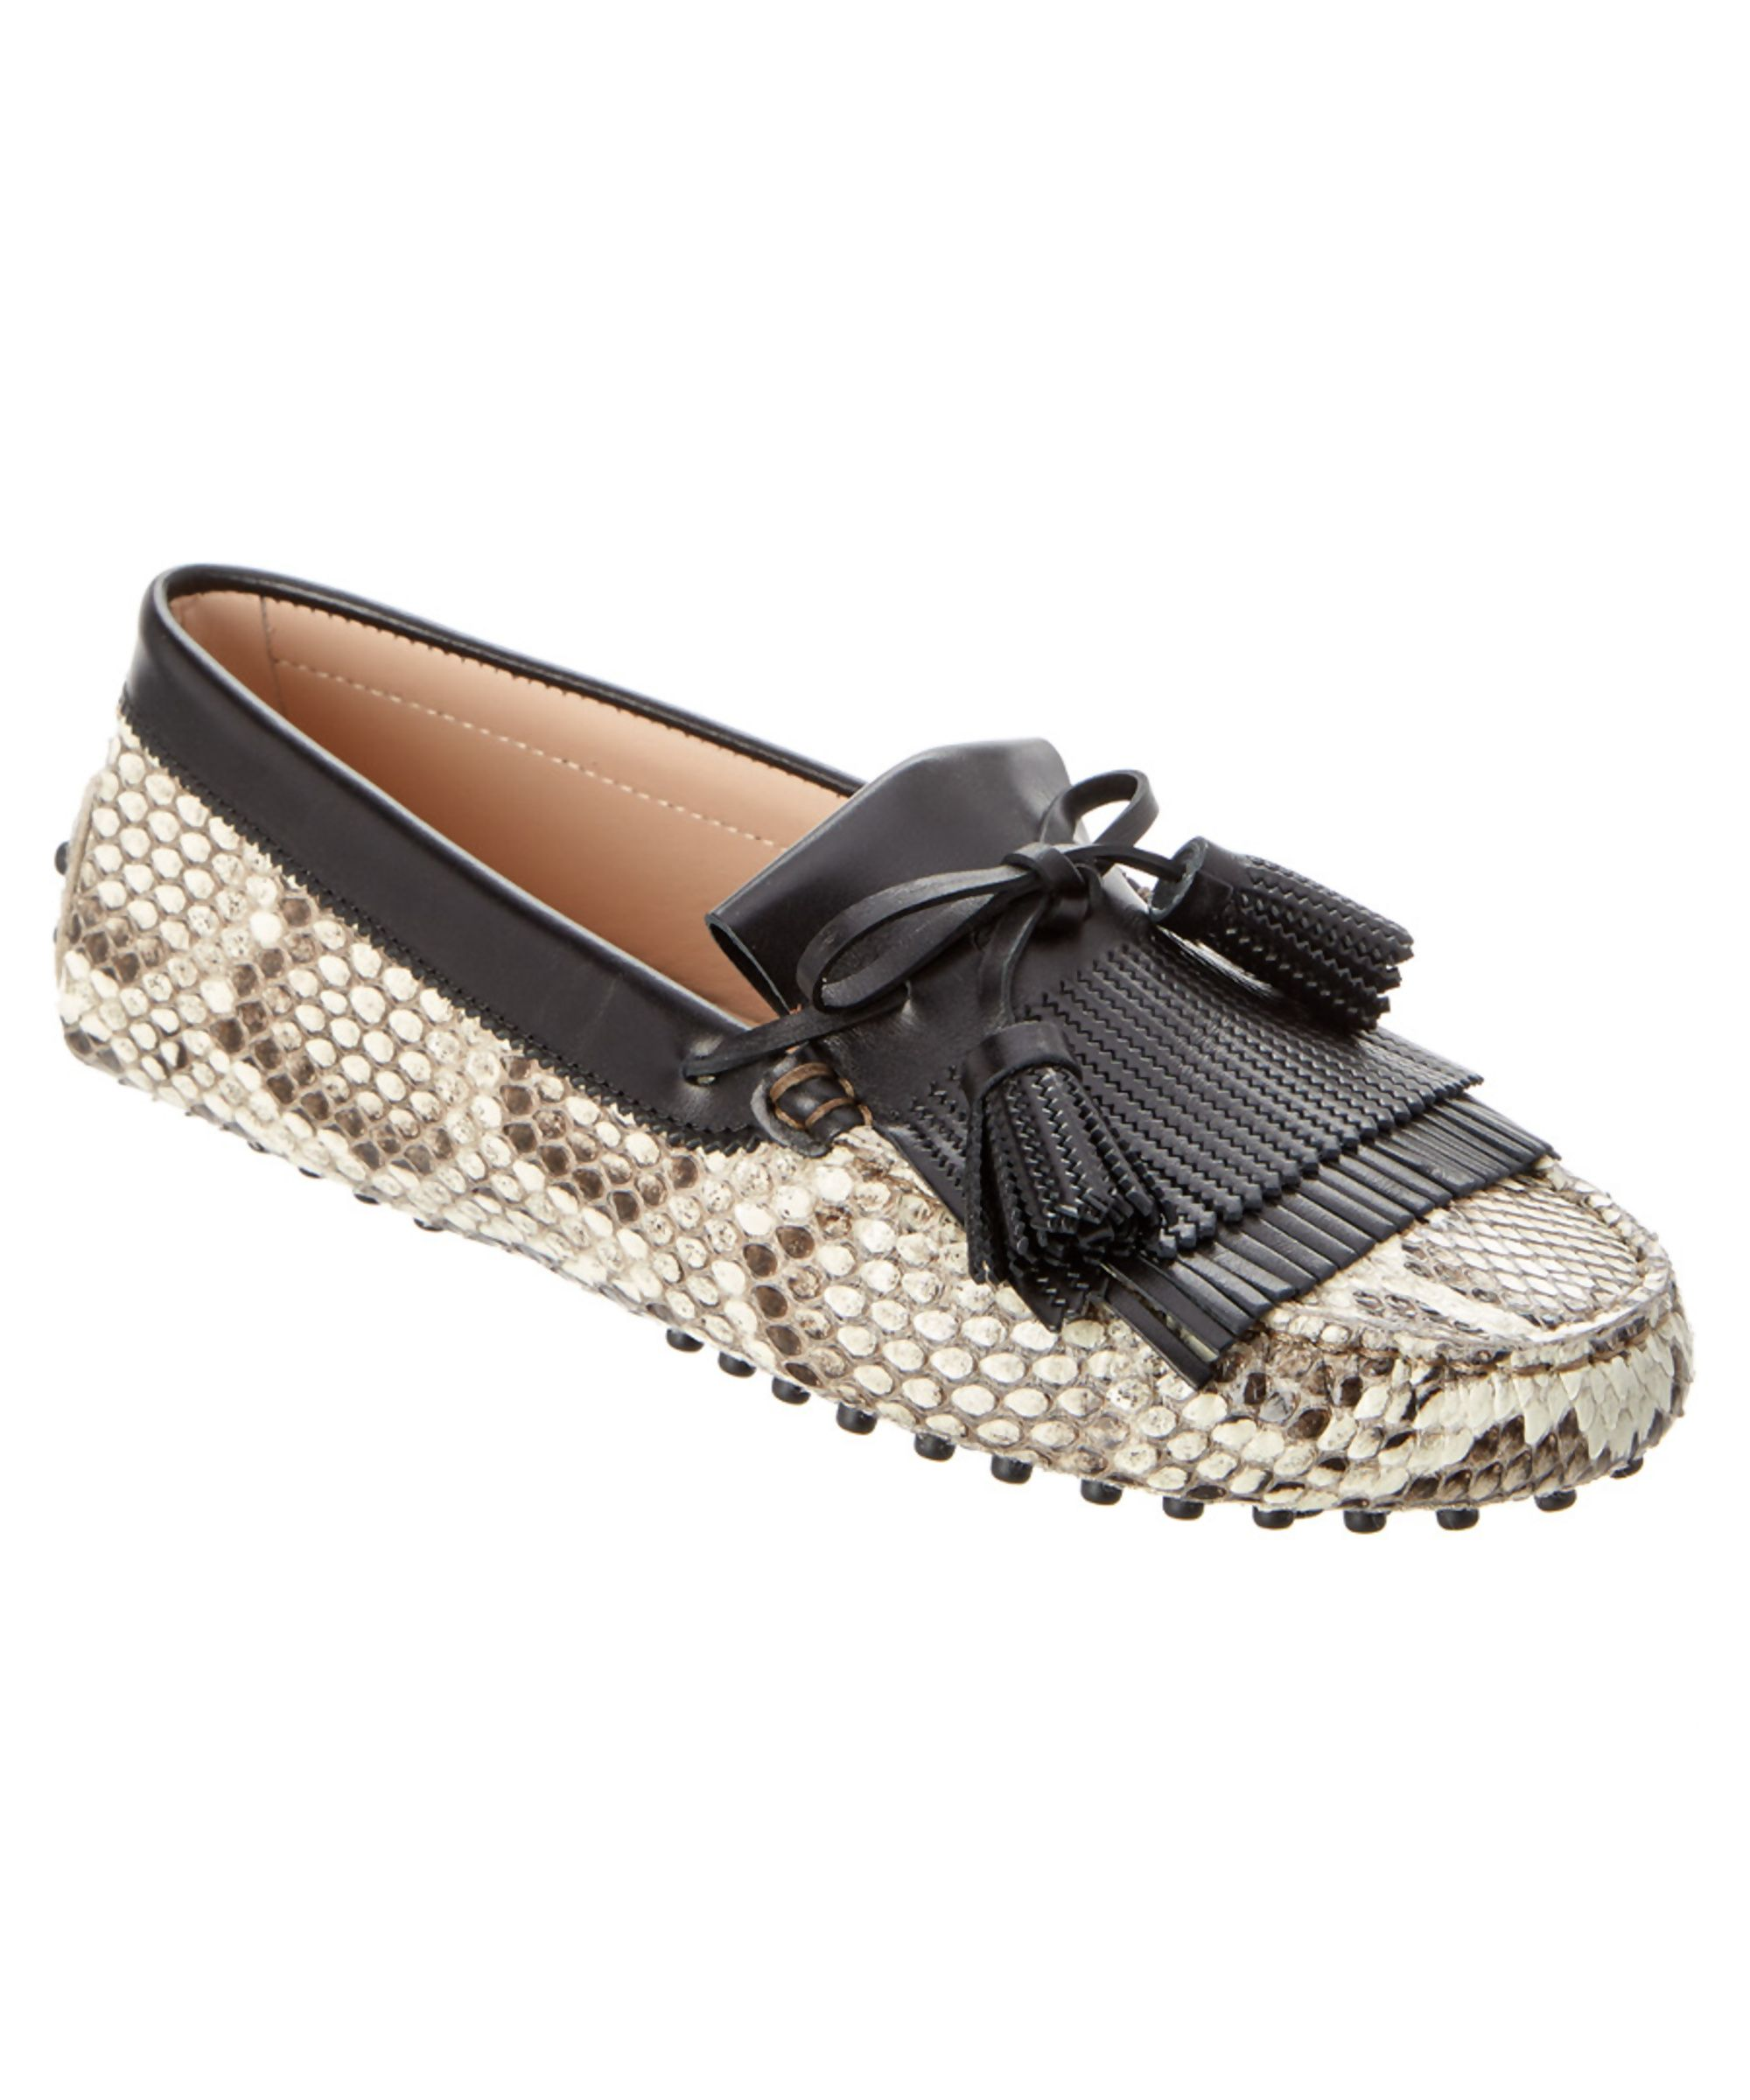 TOD'S | Tod's Gommino Snake Embossed Leather Tassel Driving Shoe #Shoes # Flats #TOD'S